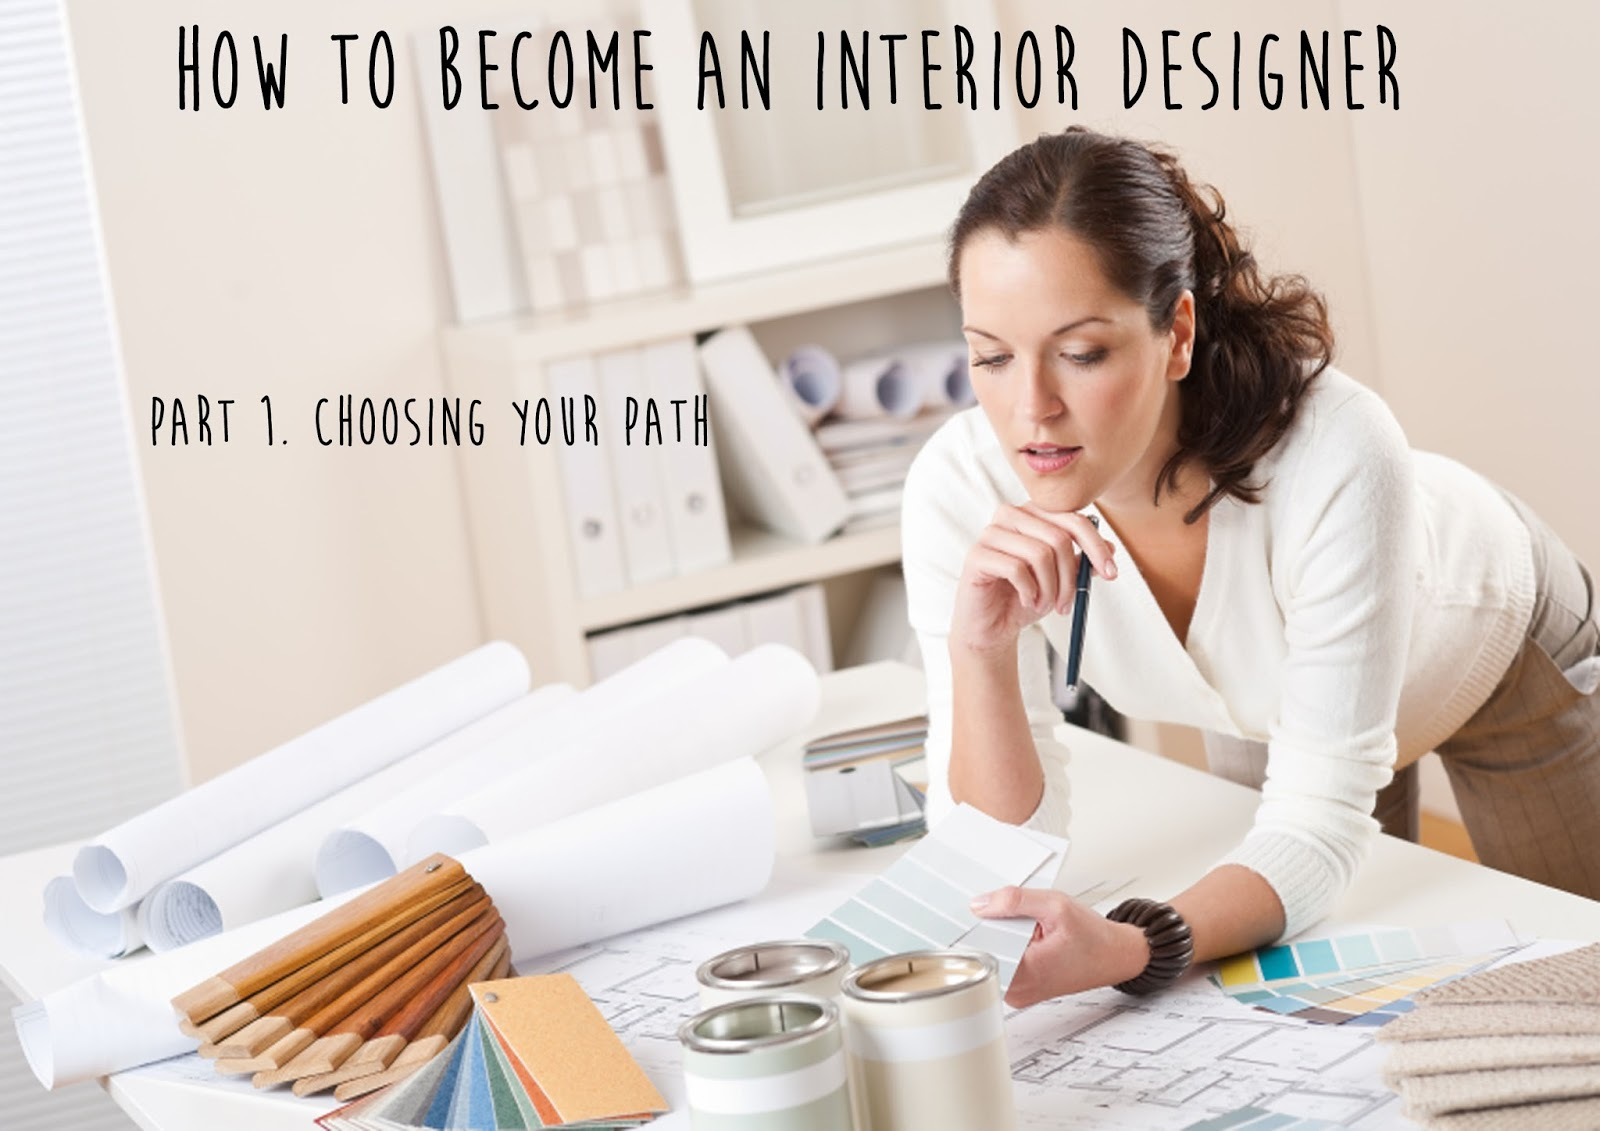 How to become an interior designer part 1 path don 39 t cramp my style - Becoming an interior designer ...